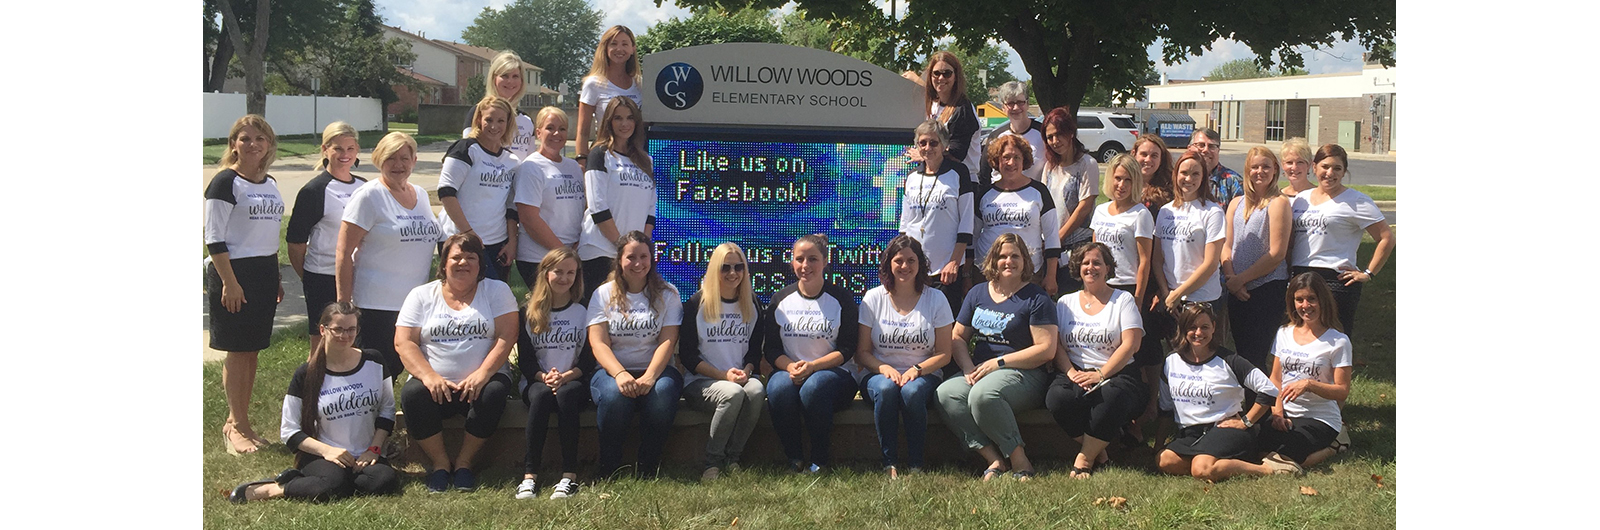 Willow Woods Elementary School Staff